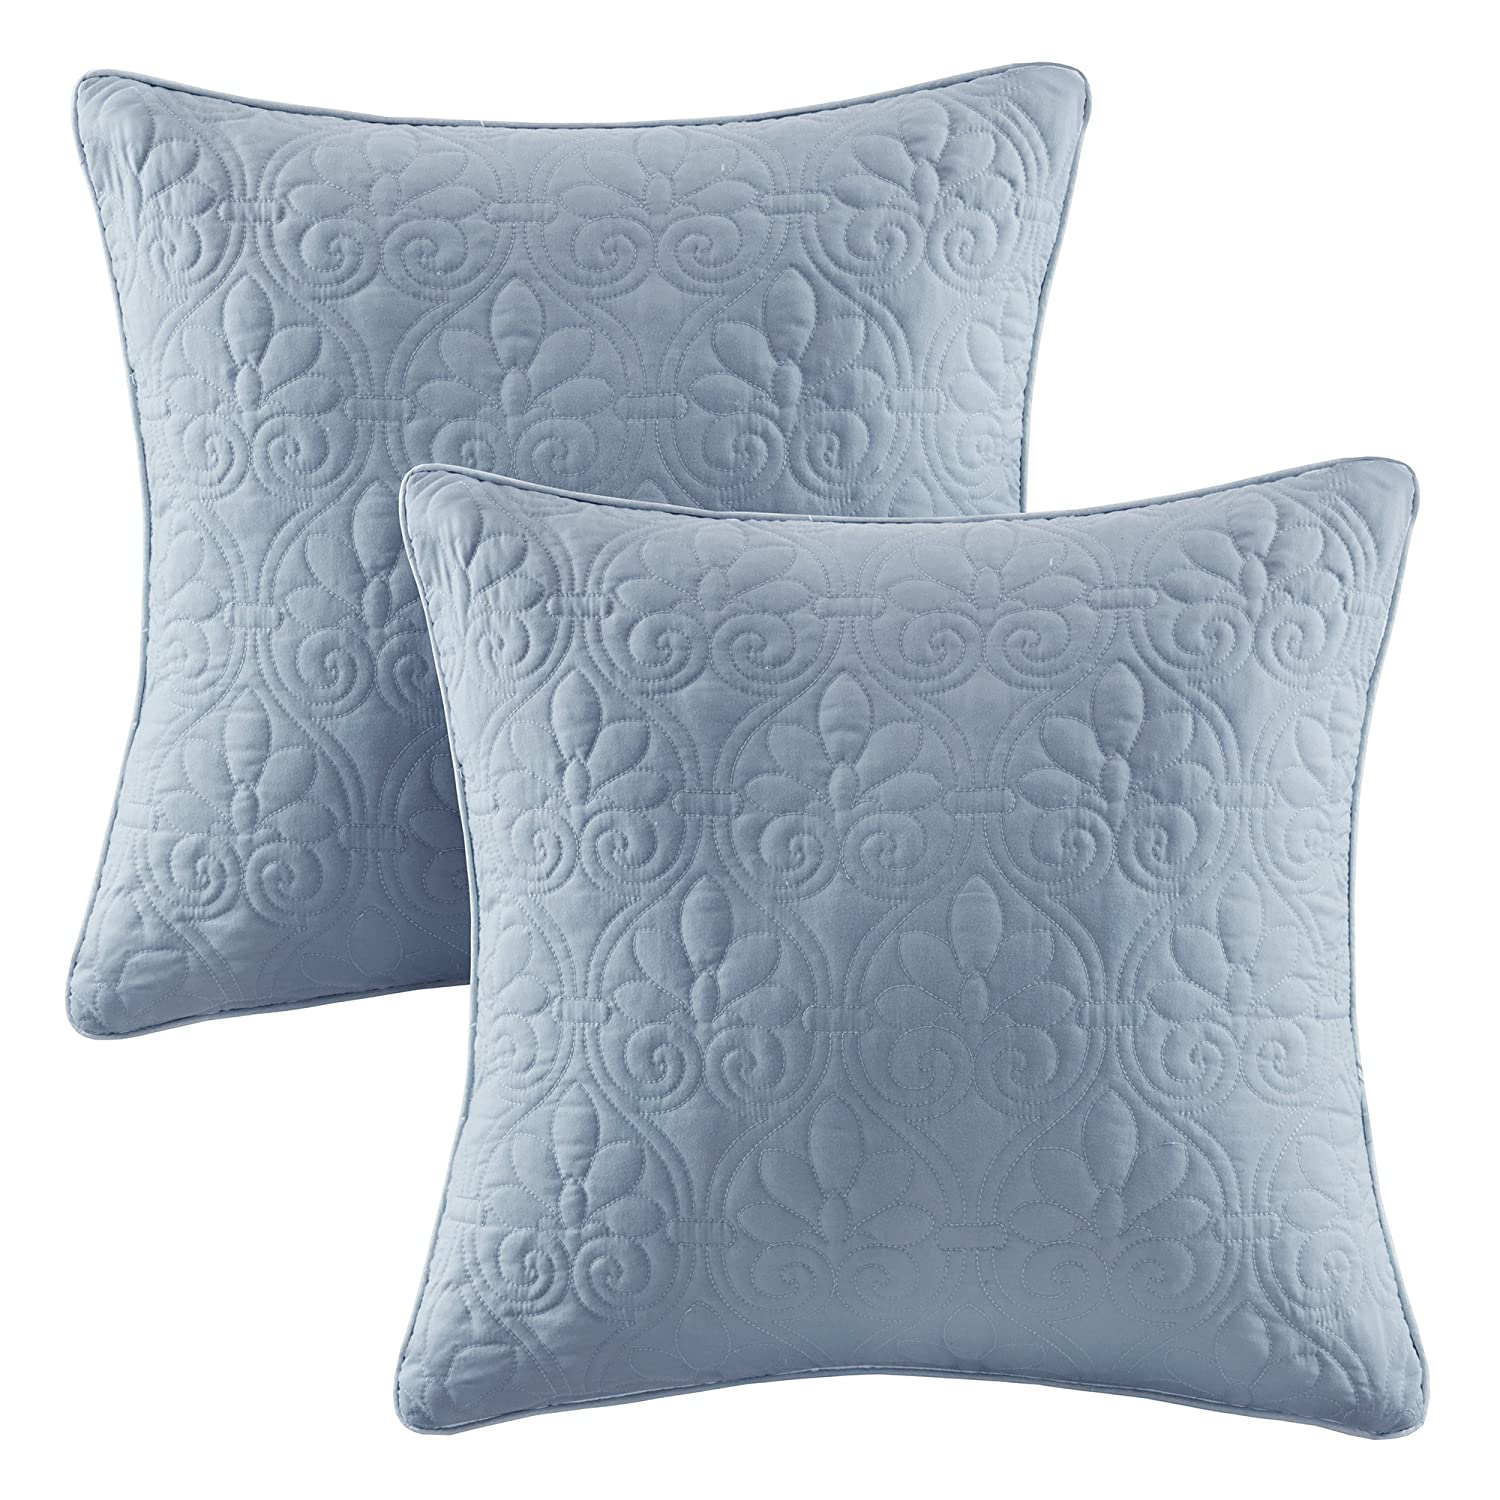 Madison Park Quebec 20x20 Quilted Square Pillow Pair Ivory 20x20 MP30-3406